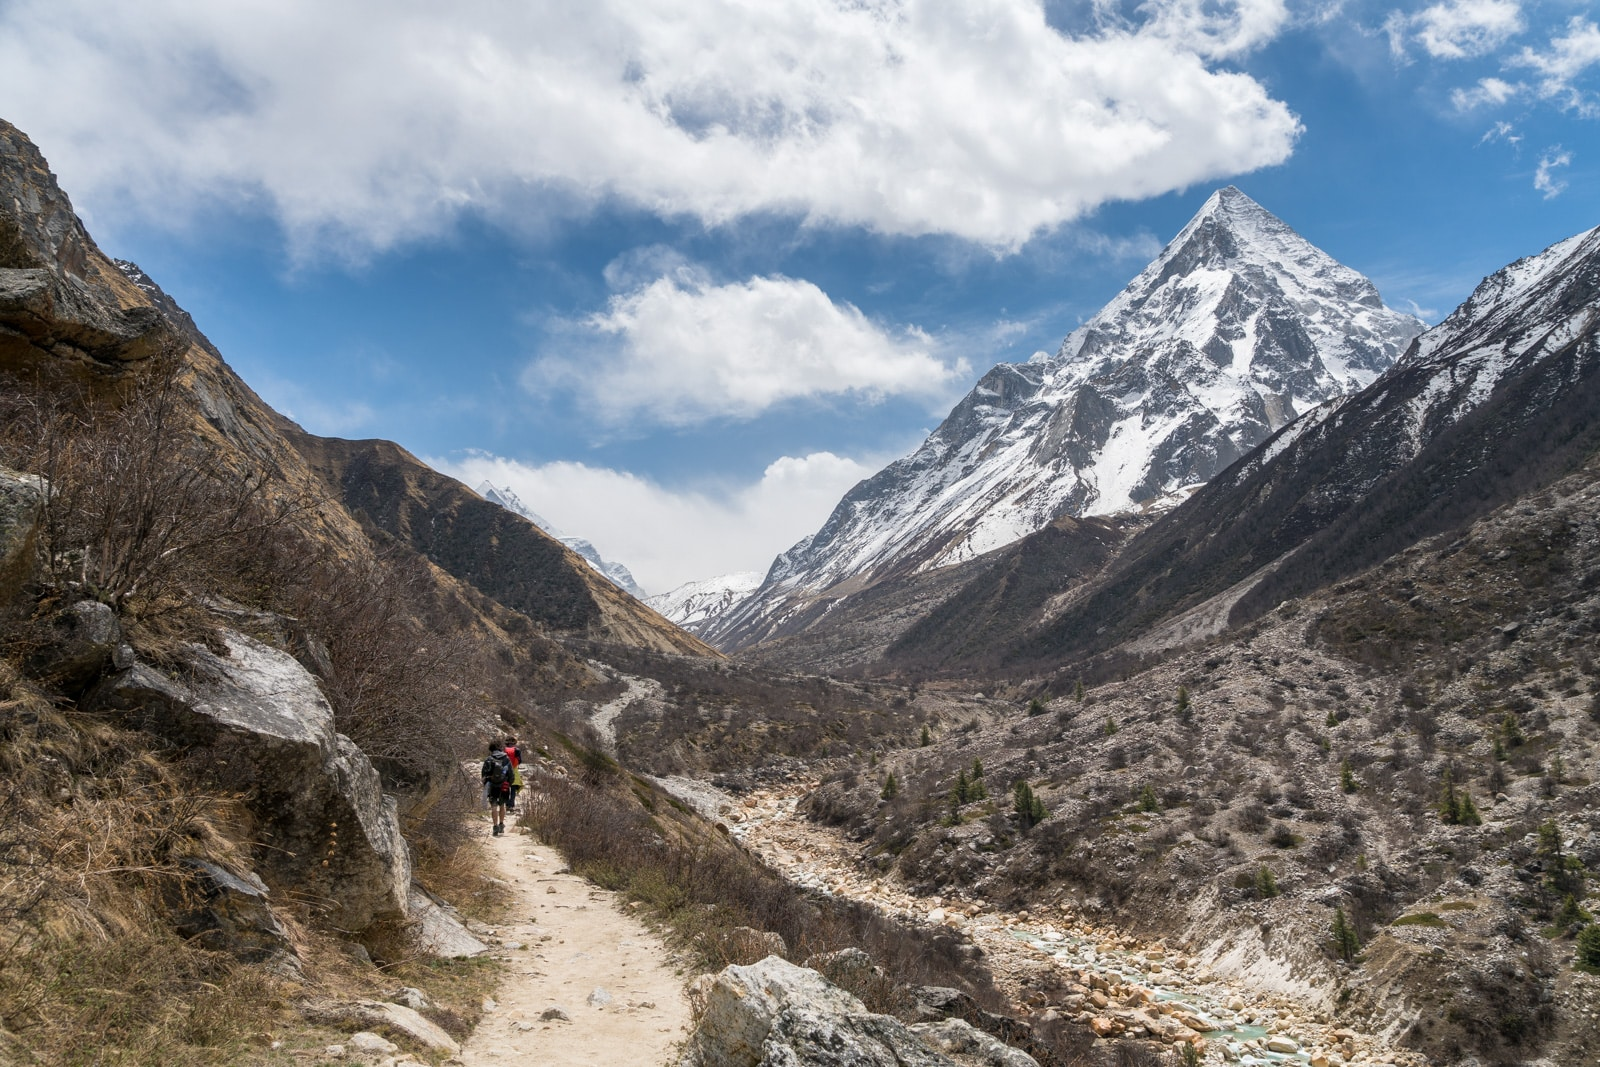 Guide to trekking to the start of the Ganges River in Uttarakhand, India - Trekking trail to Gomukh and Gangotri glacier - Lost With Purpose travel blog